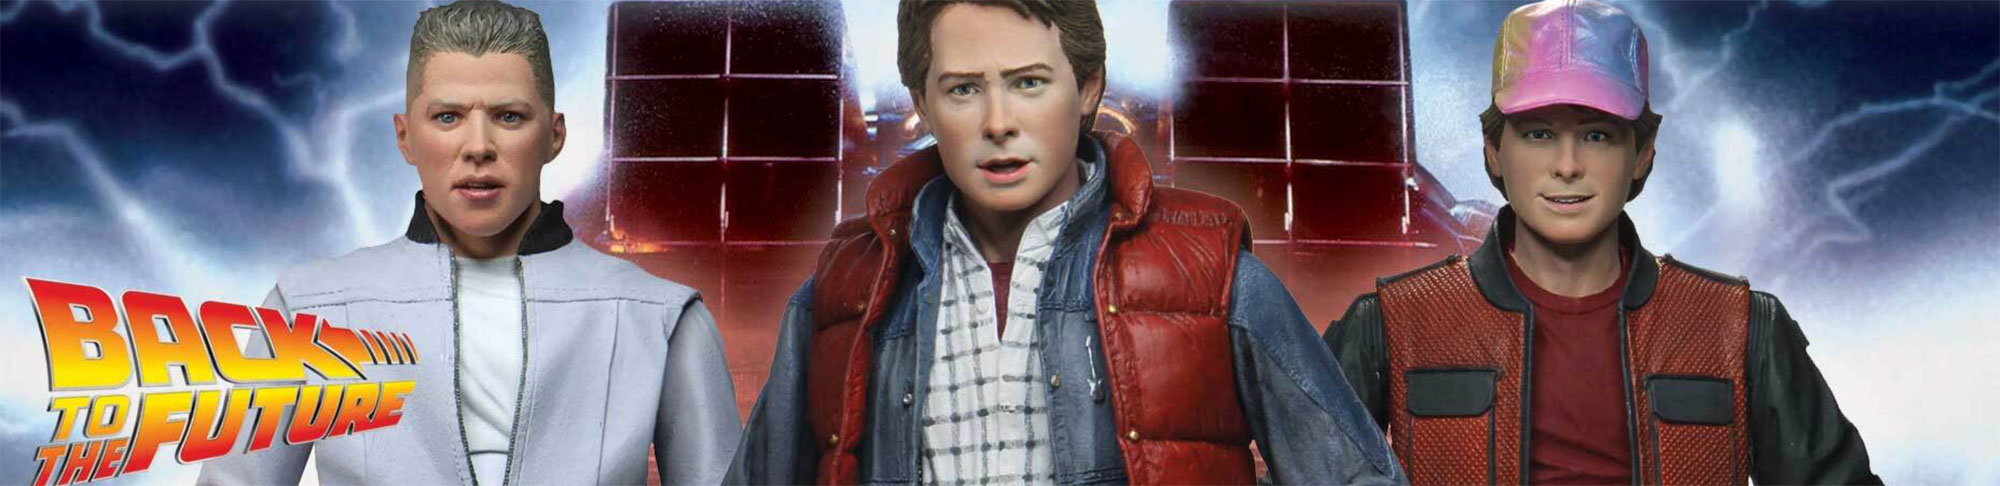 back-to-the-future-neca-ultimate-action-figures